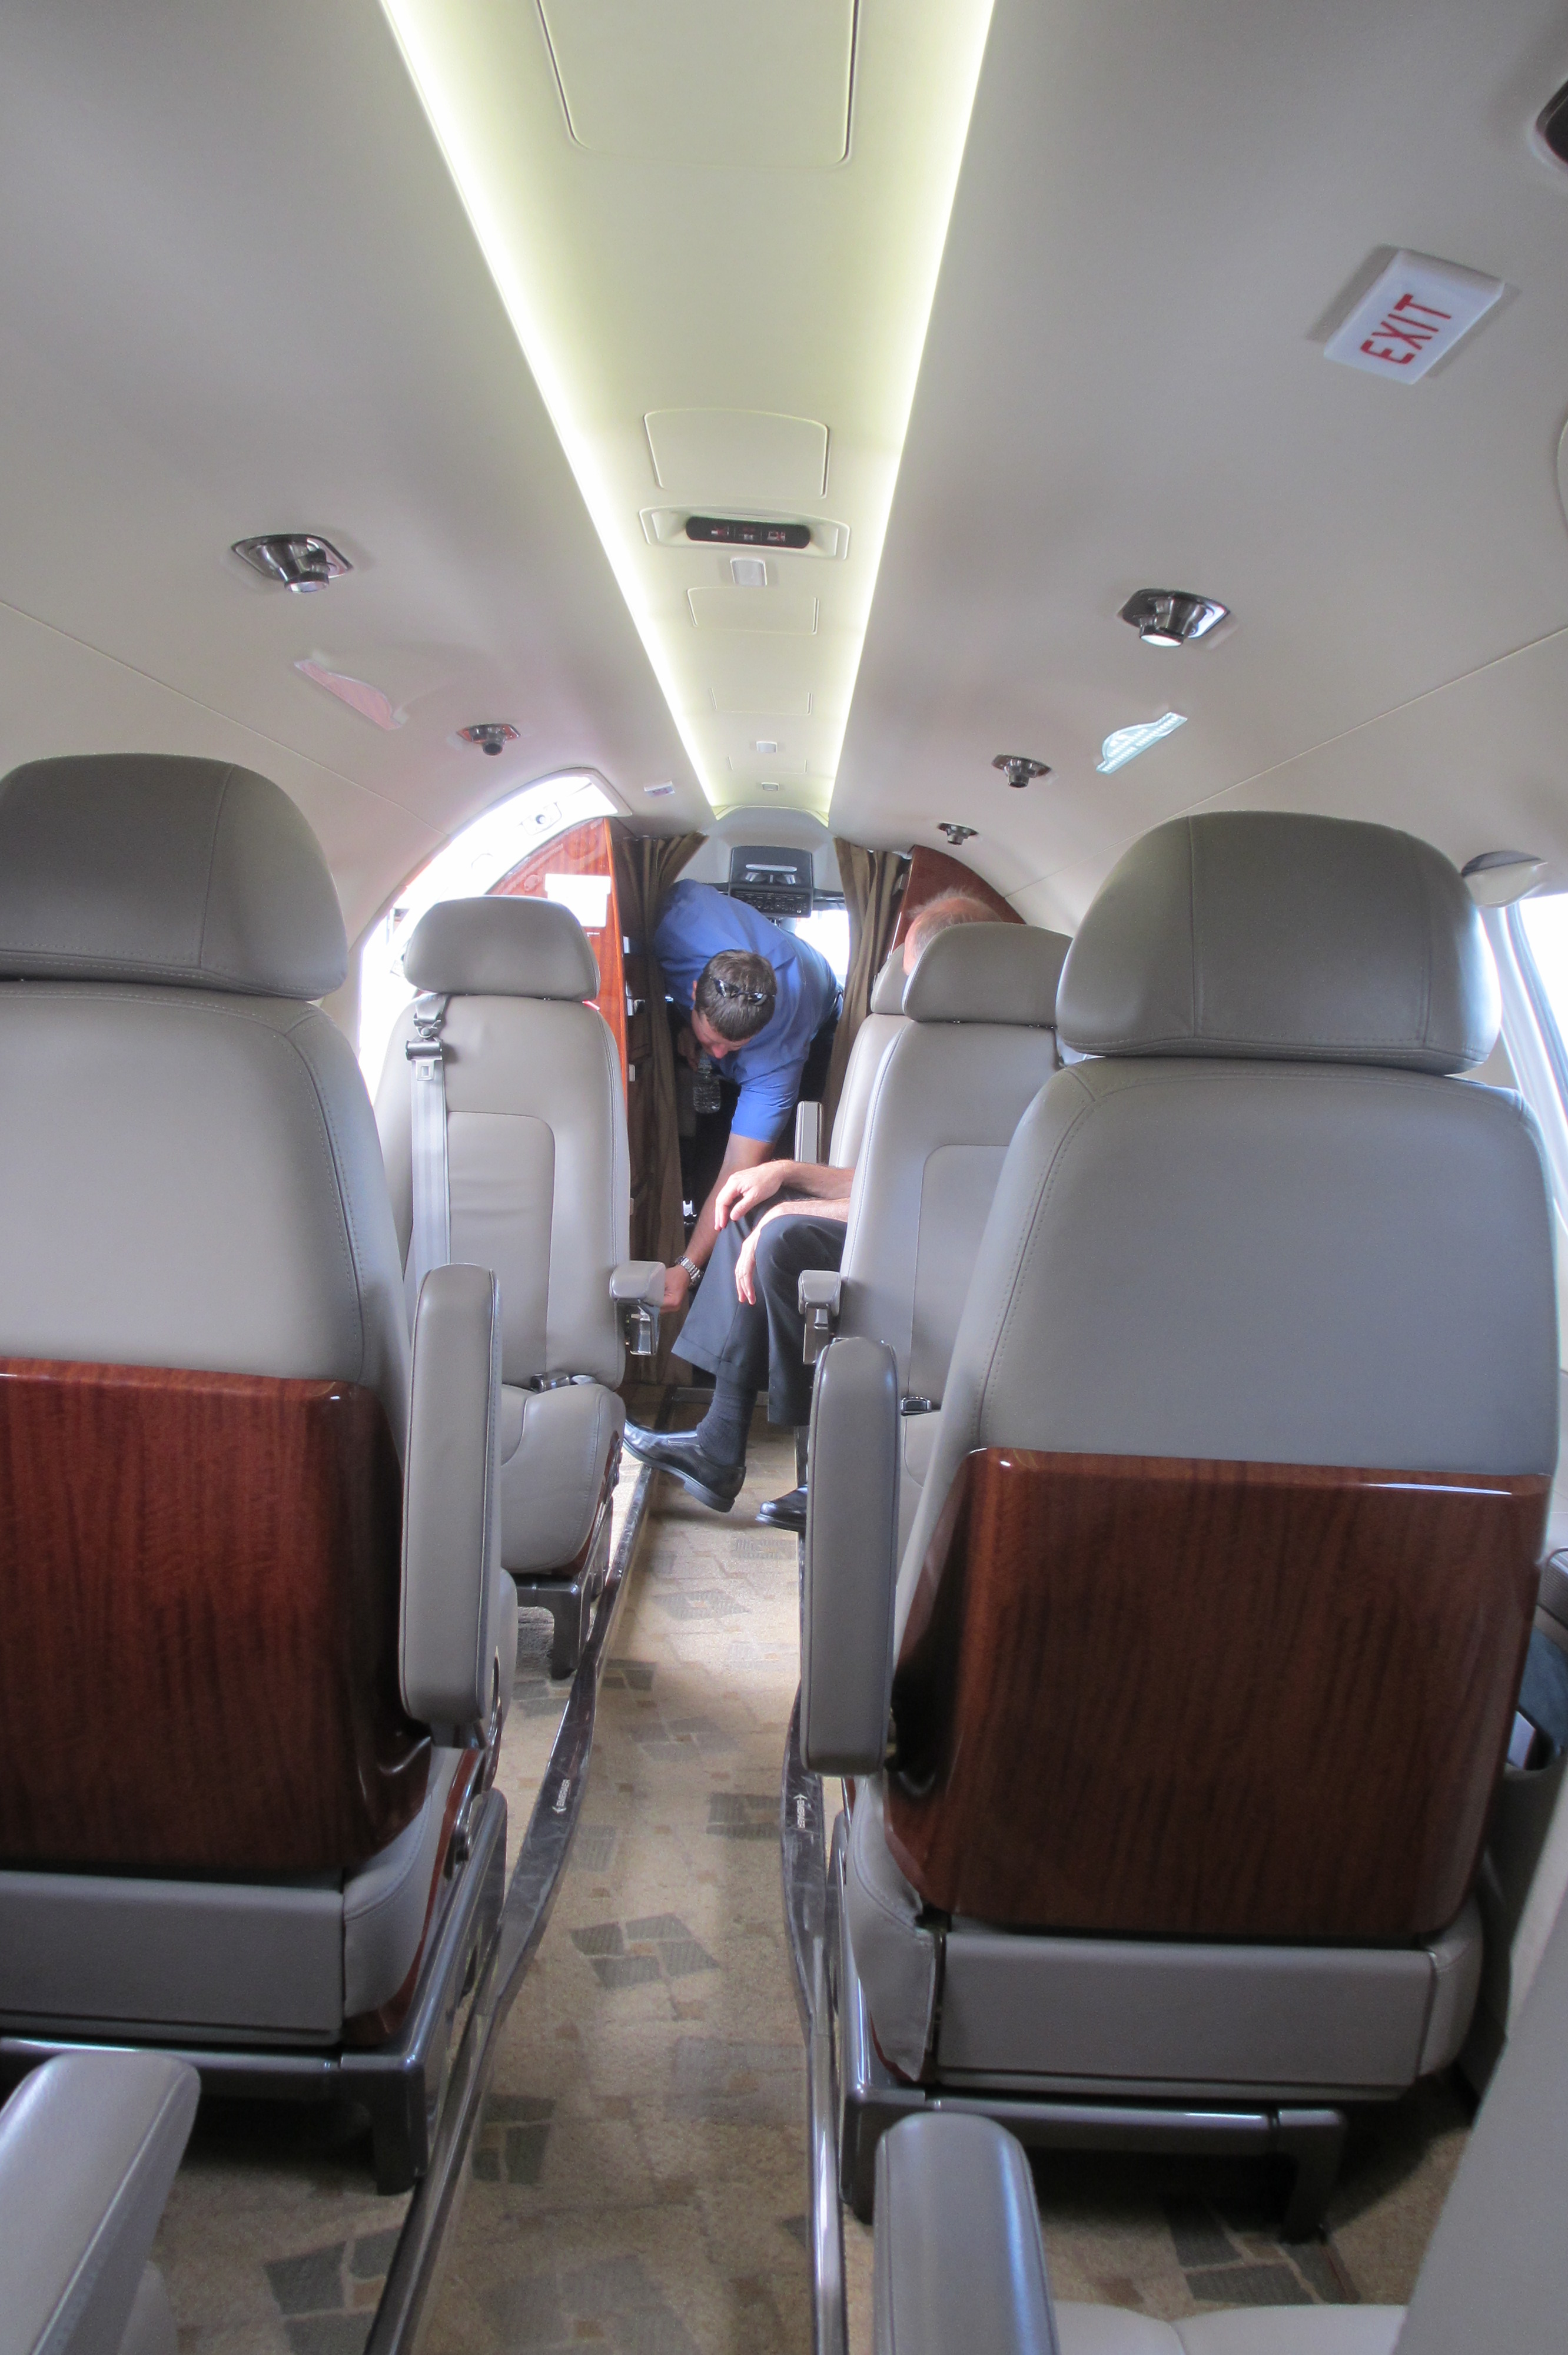 File:Embraer EMB 505 Phenom 300 Cabin With Passengers